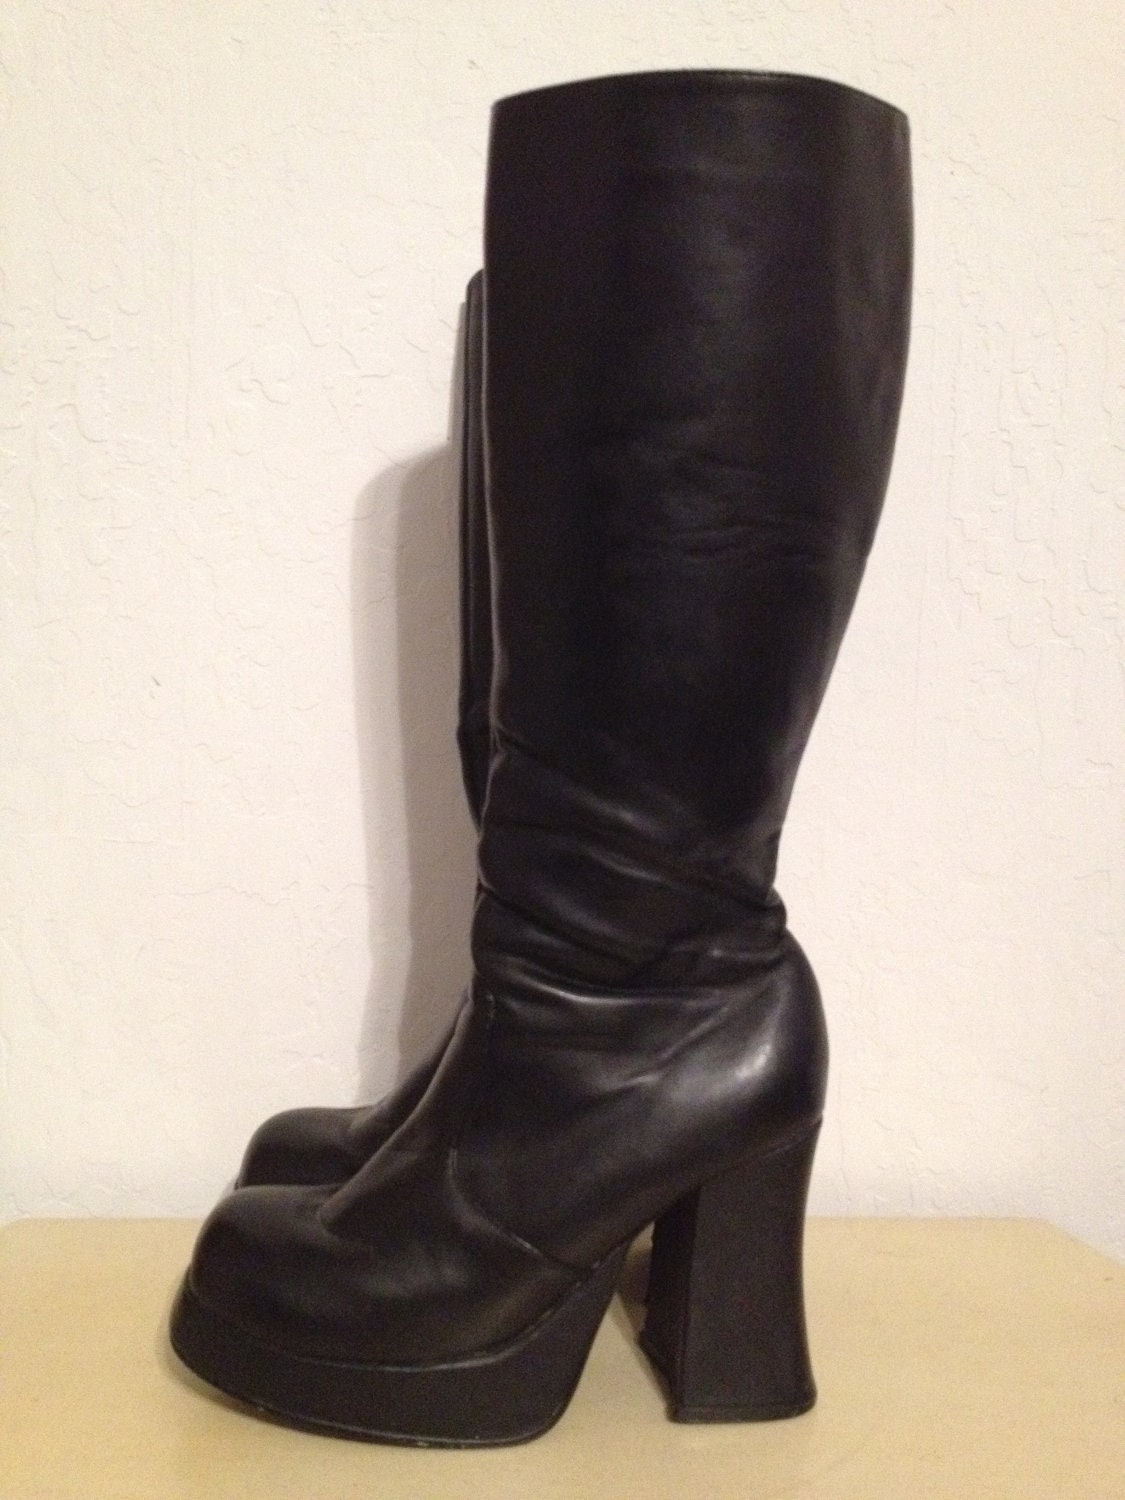 Vintage 90s Black Chunky Platform Boots Knee High 8 5